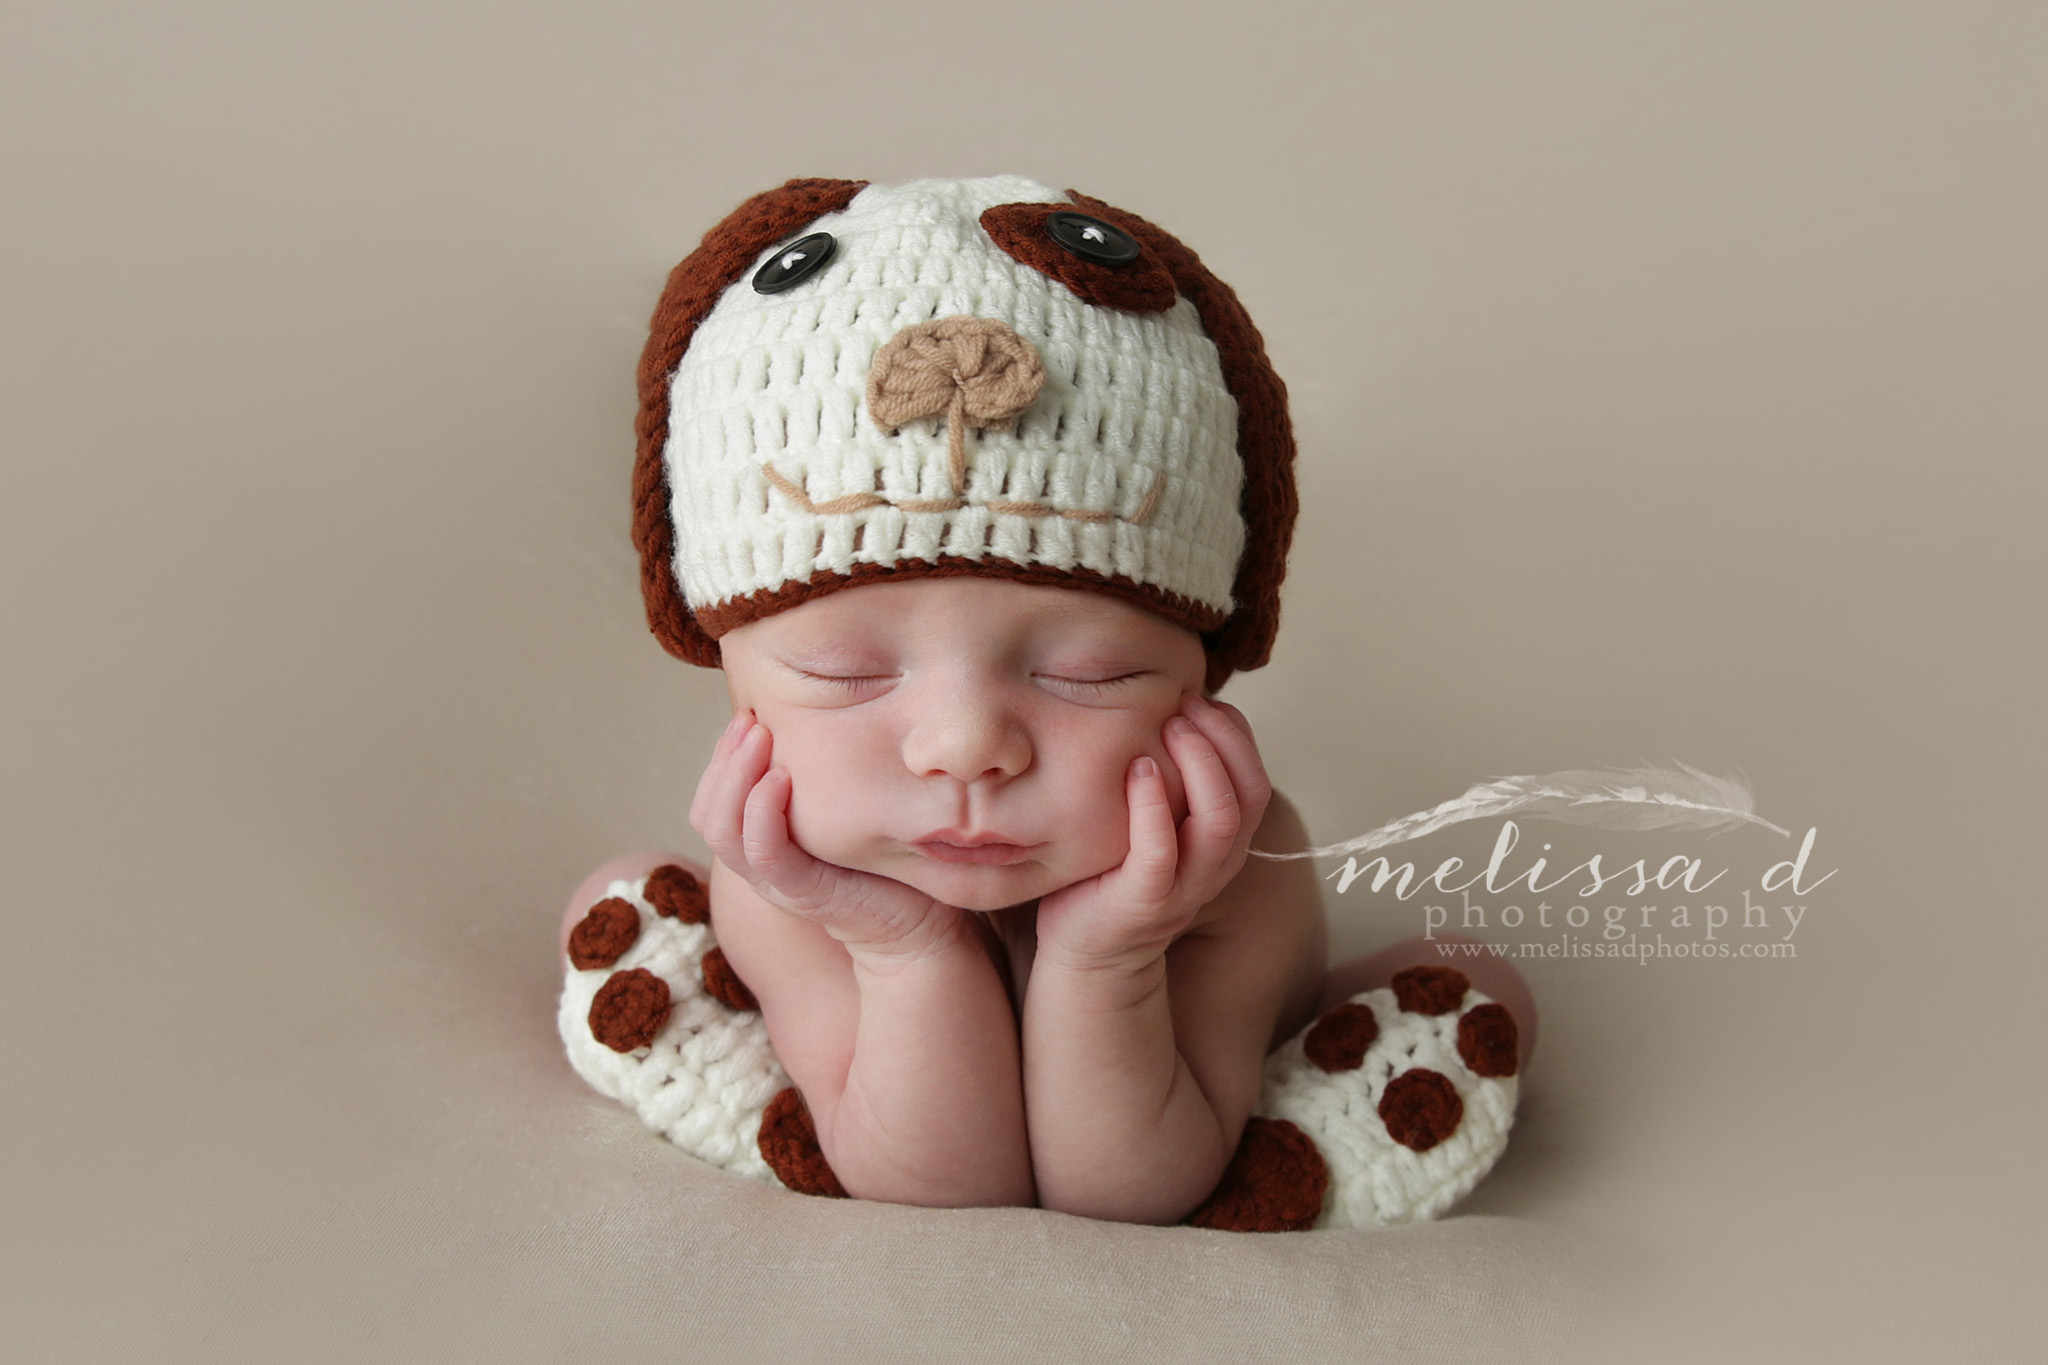 Ft. Worth Newborn Photographer puppy froggy pose